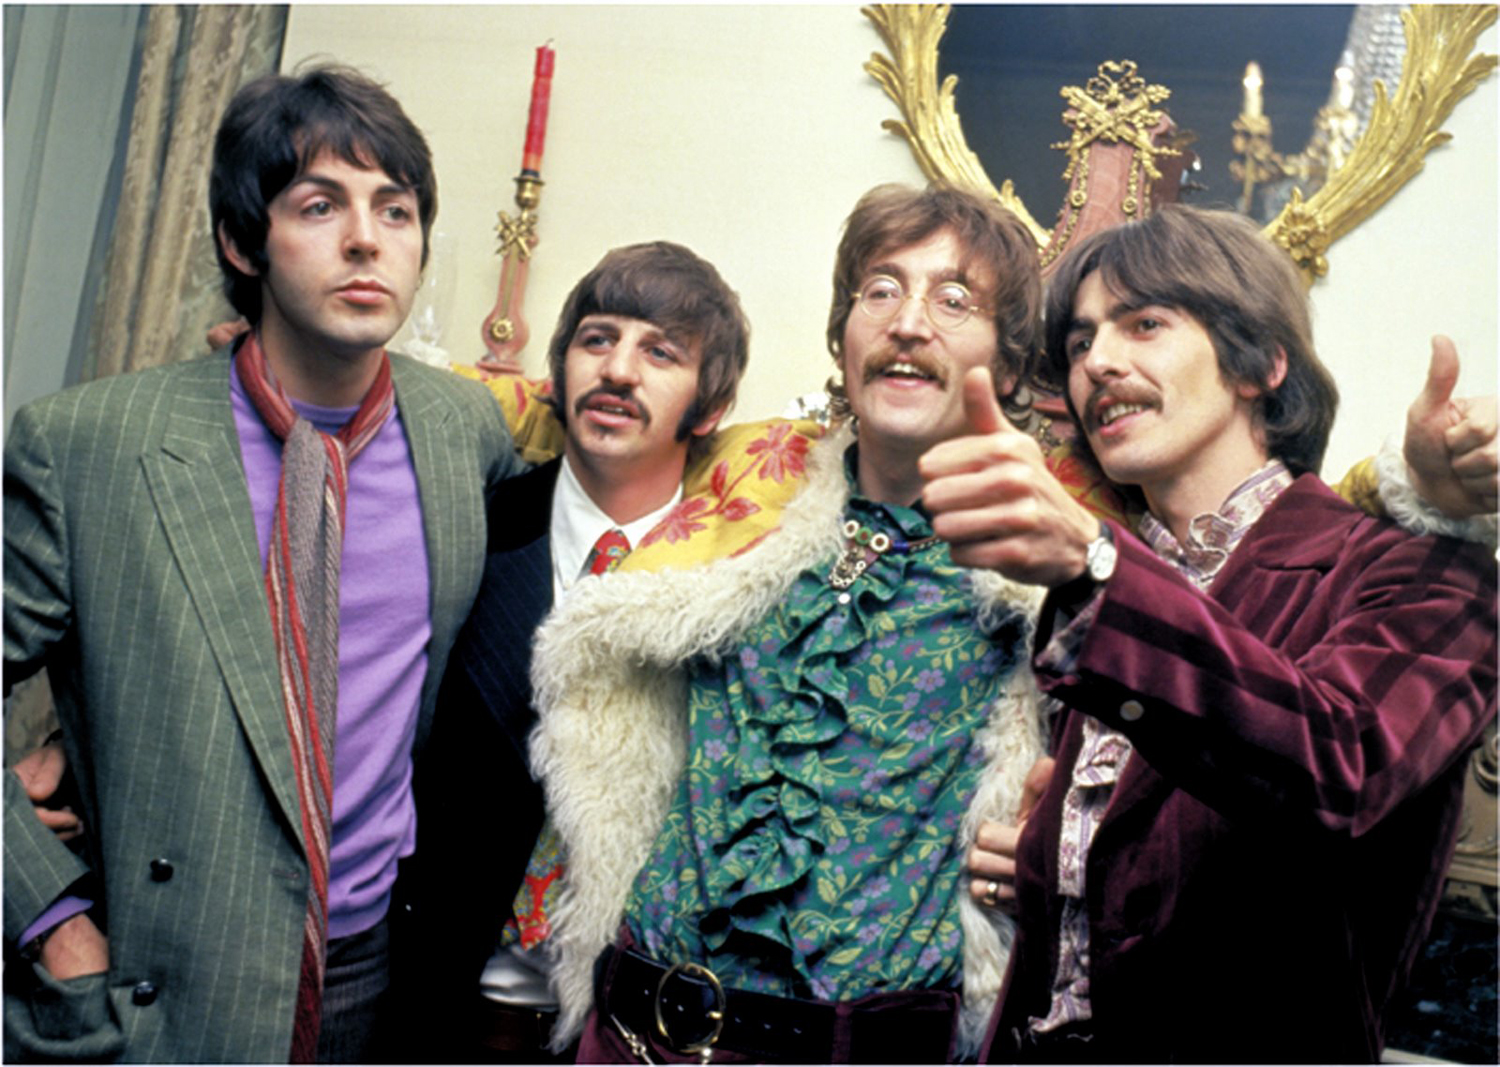 abstract-beatles-music-group-high-definition-wallpaper